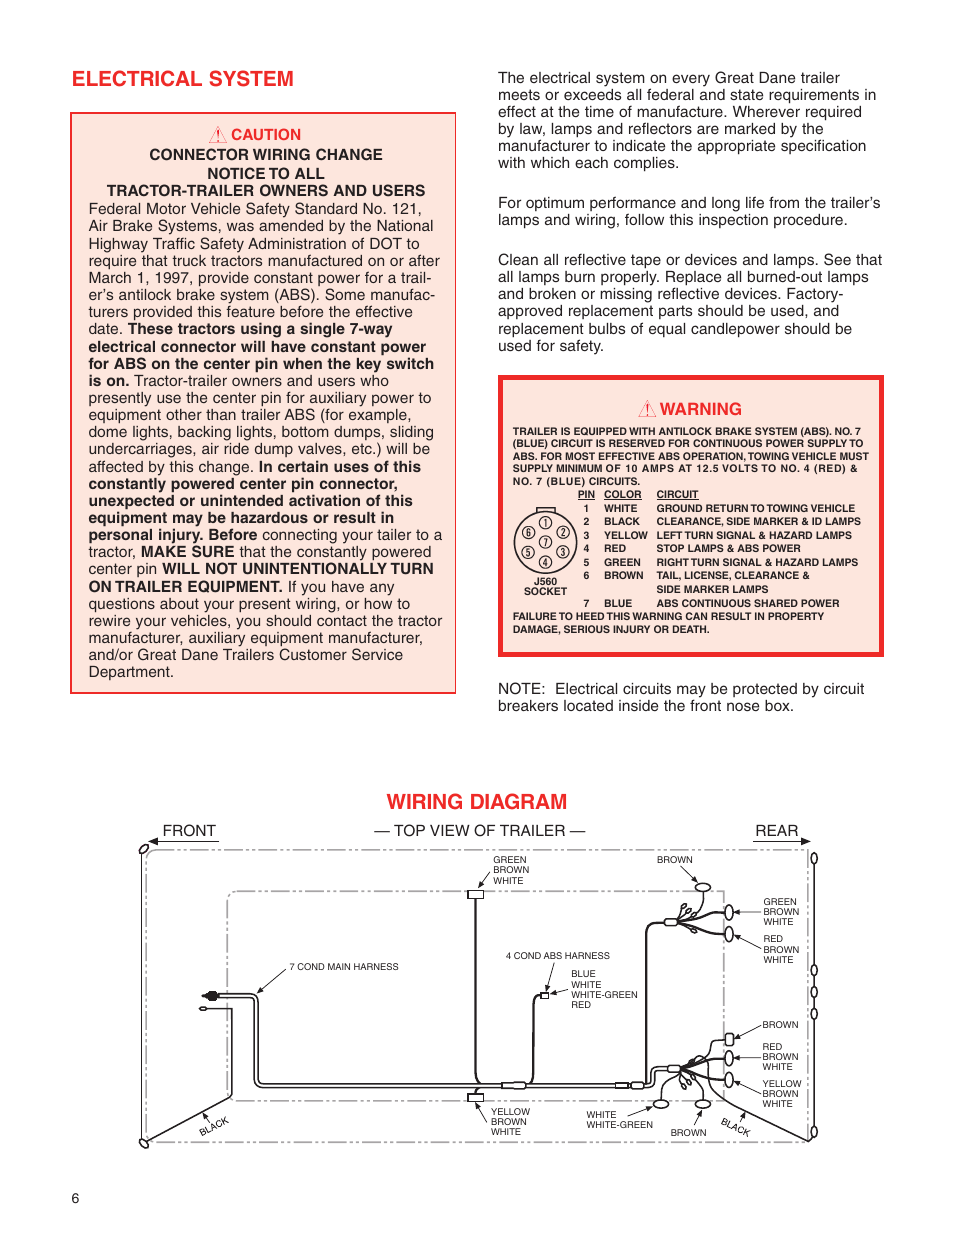 hight resolution of electrical system wiring diagram warning great dane 42101401 user manual page 8 32